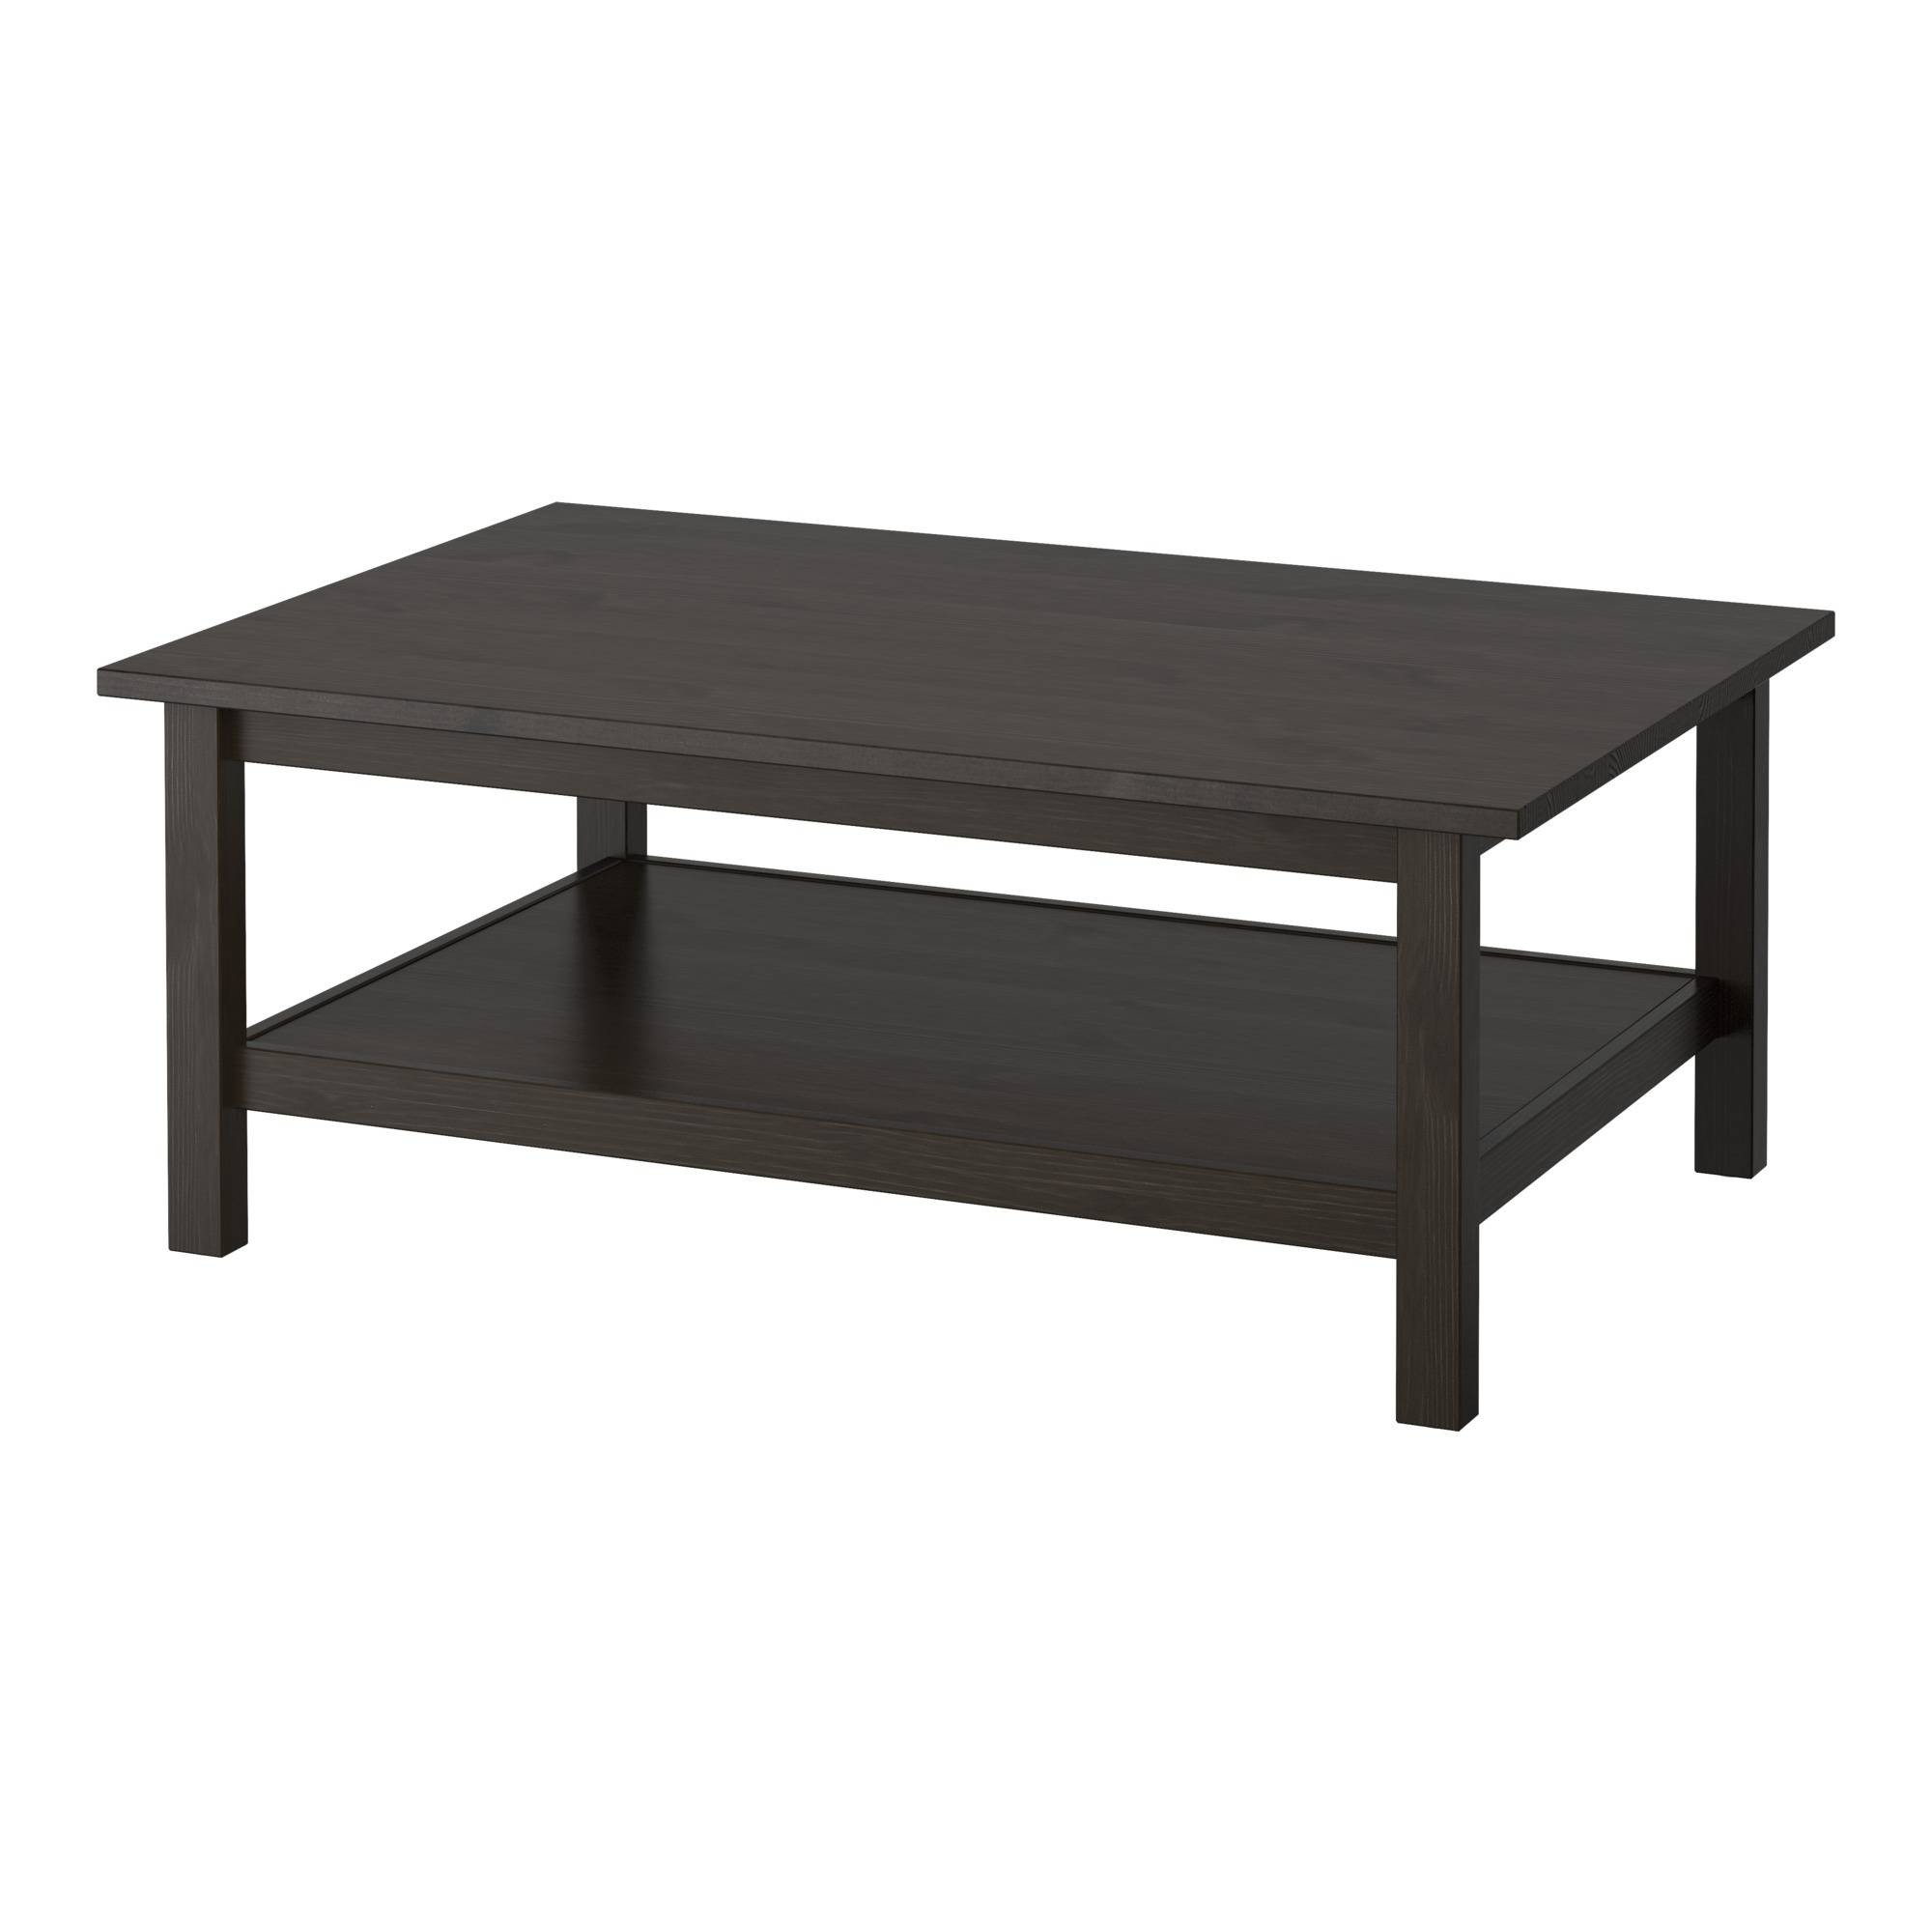 Hemnes Coffee Table - Black-Brown - Ikea within White And Black Coffee Tables (Image 11 of 30)